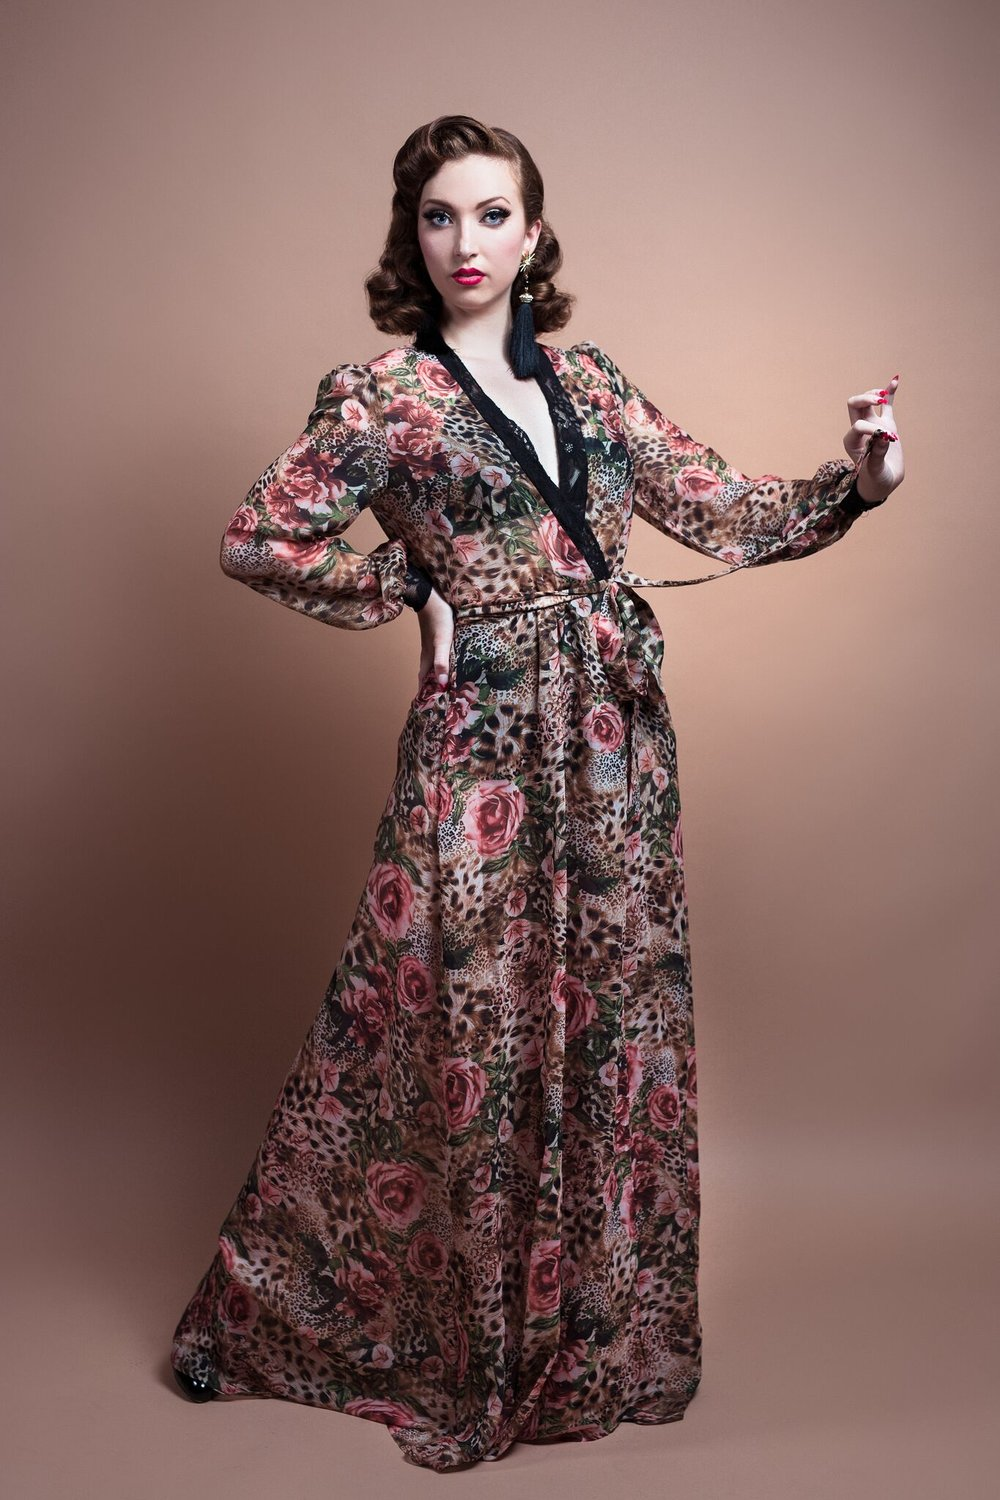 Sheer Glamour Dressing GownLeopard Print -$179 - This 1940's inspired sheer peignoir is a special feature to this Boudoir Collection. Made out of a unique leopard and rose print polyester chiffon…this piece is both fierce and feminine.The peignoir drapes beautifully around the body and is excellent for glamour shoots, backstage elegance or just simply wanting to bring a bit of drama into your home.The cuffs and the front bodice are highlighted with a touch of black lace.Citrine is wearing a Size 10 in the Sheer Glamour Dressing Gown